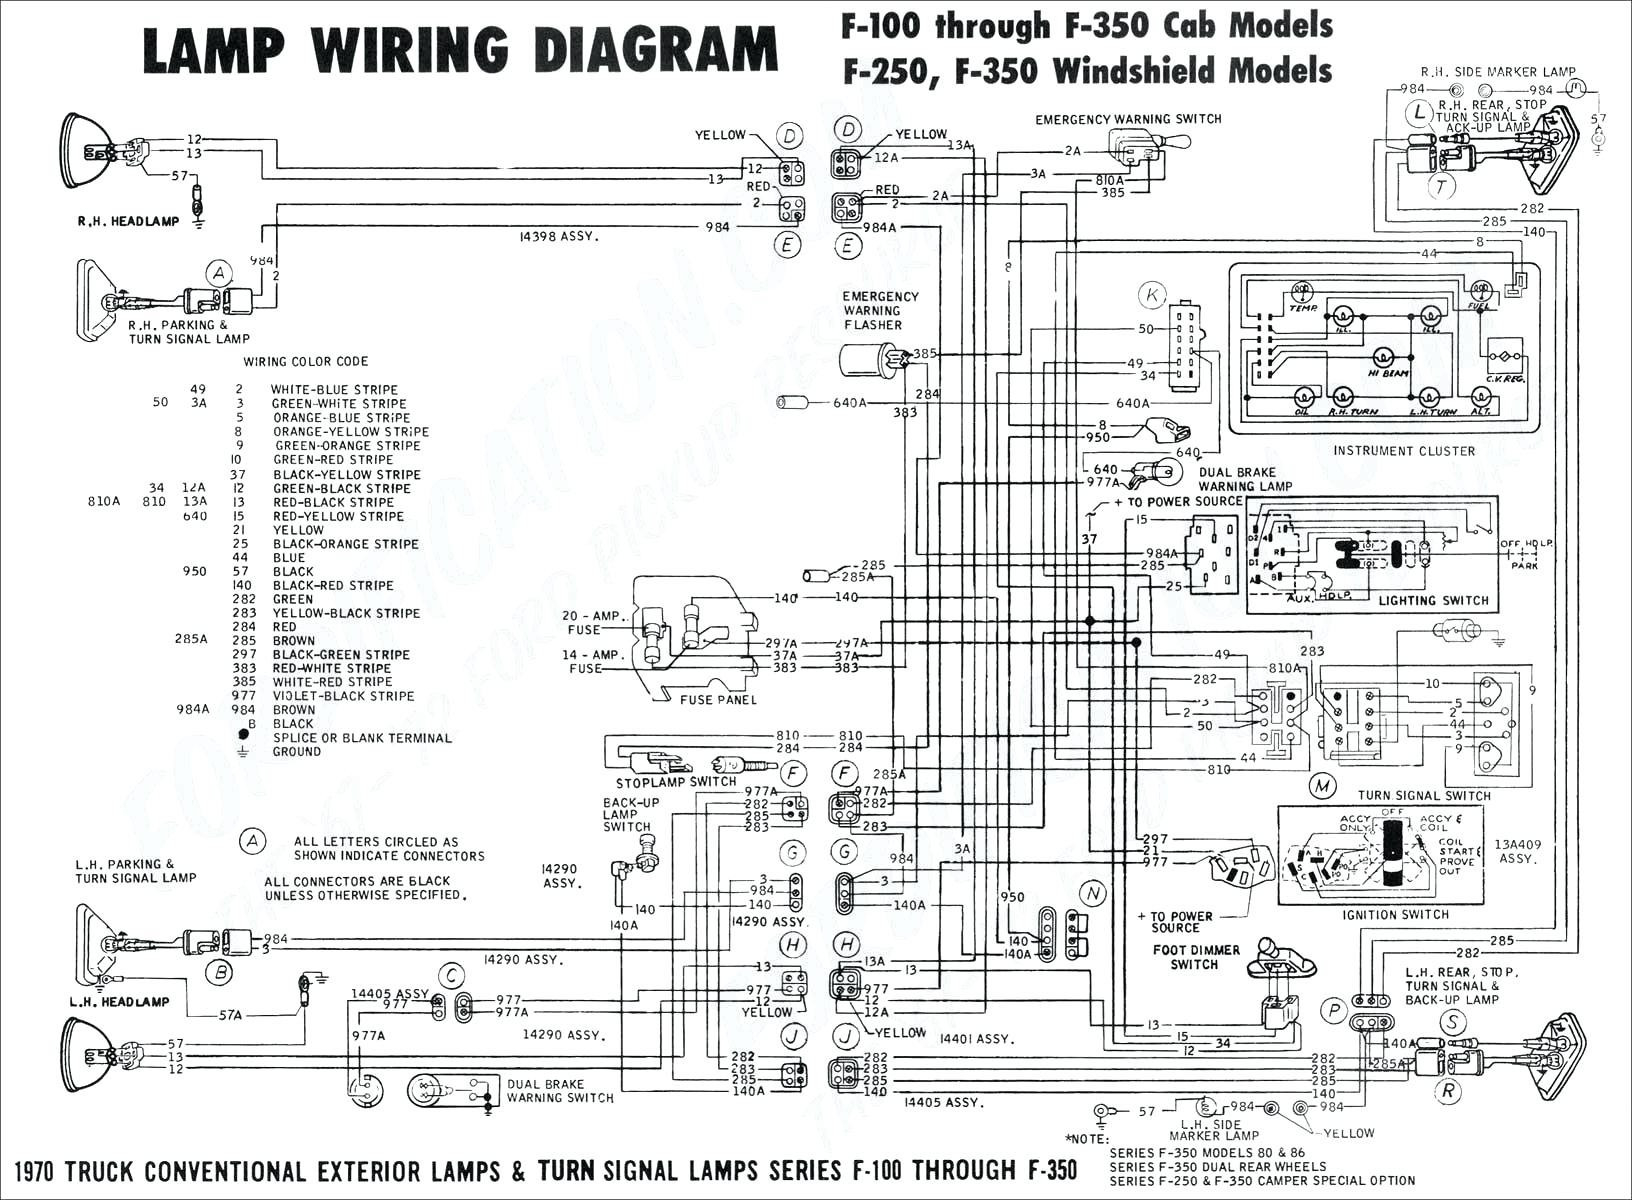 hight resolution of 2010 flex wiring diagram experts of wiring diagram u2022 rh evilcloud co uk furnace fan relay